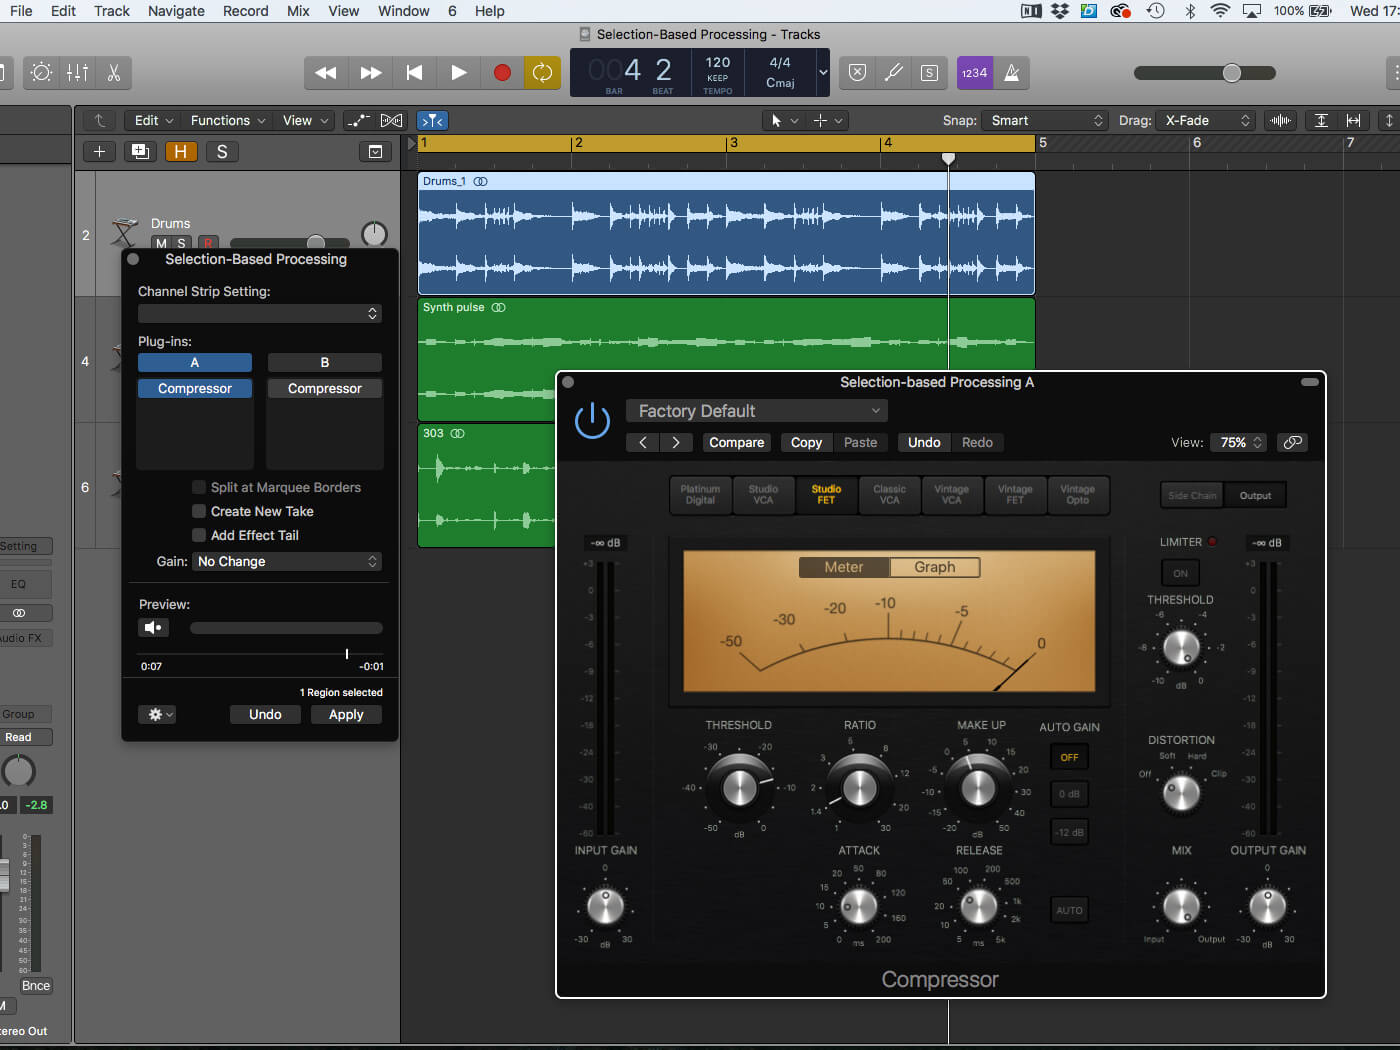 Working with Selection-Based Processing in Logic Pro X - MusicTech